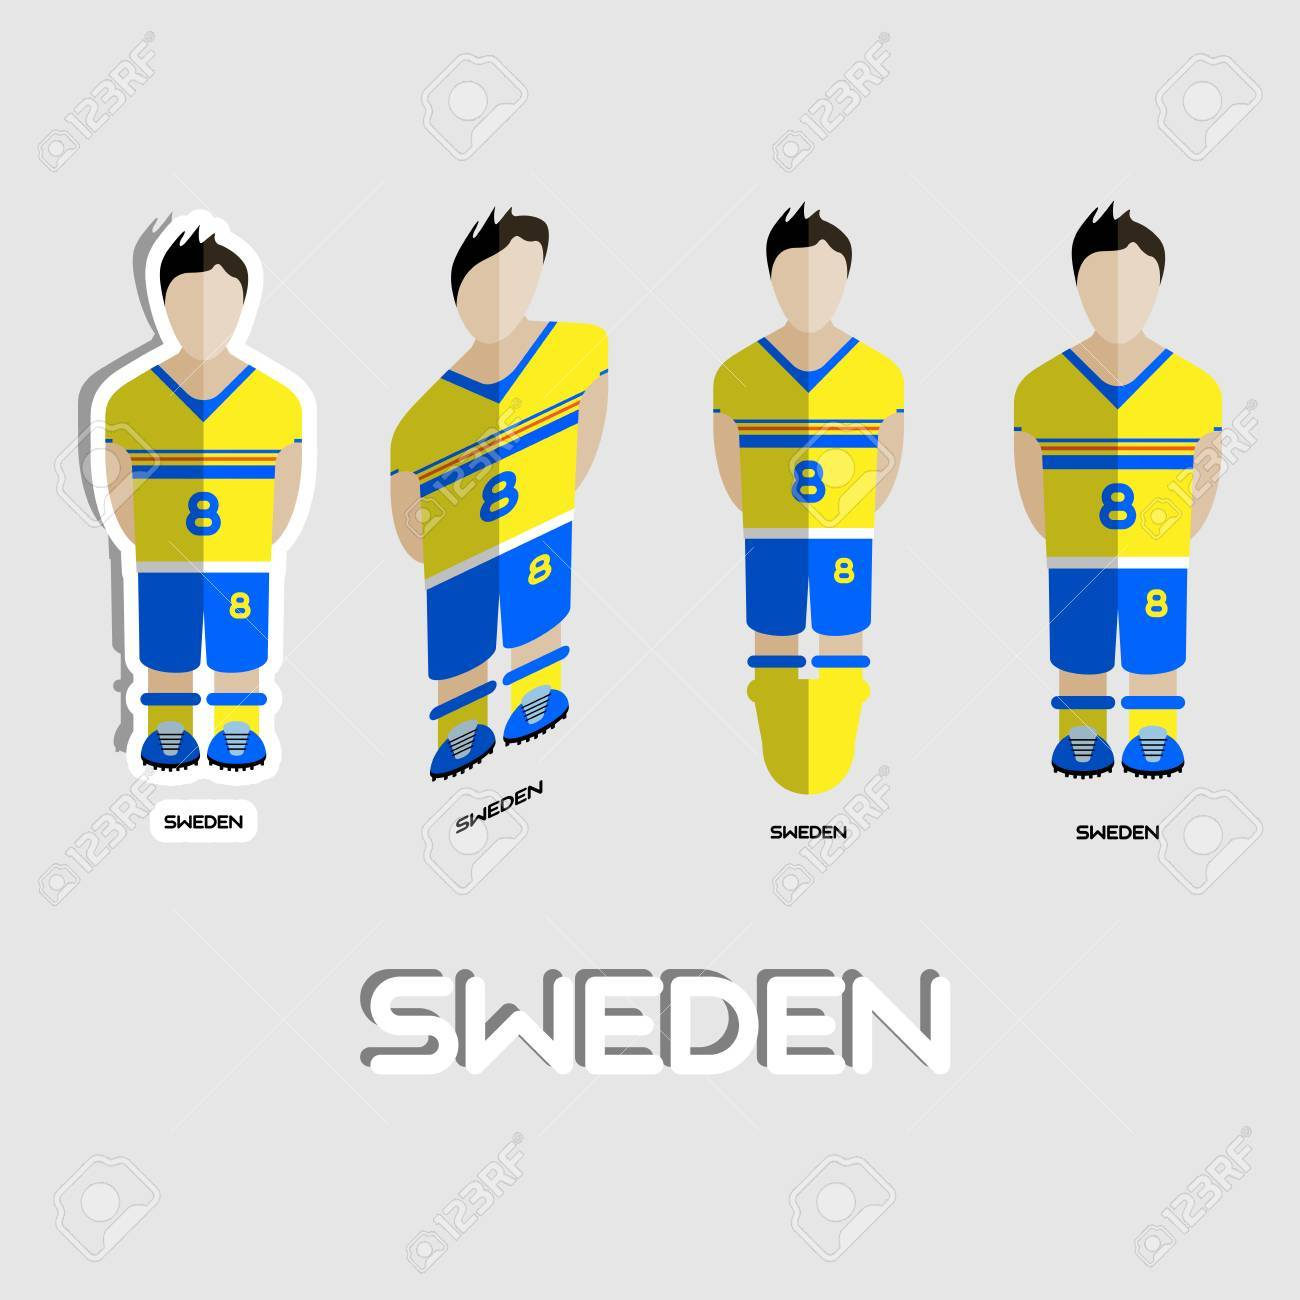 0a919ac198e Sweden Soccer Team Sportswear Template. Front View of Outdoor Activity  Sportswear for Men and Boys